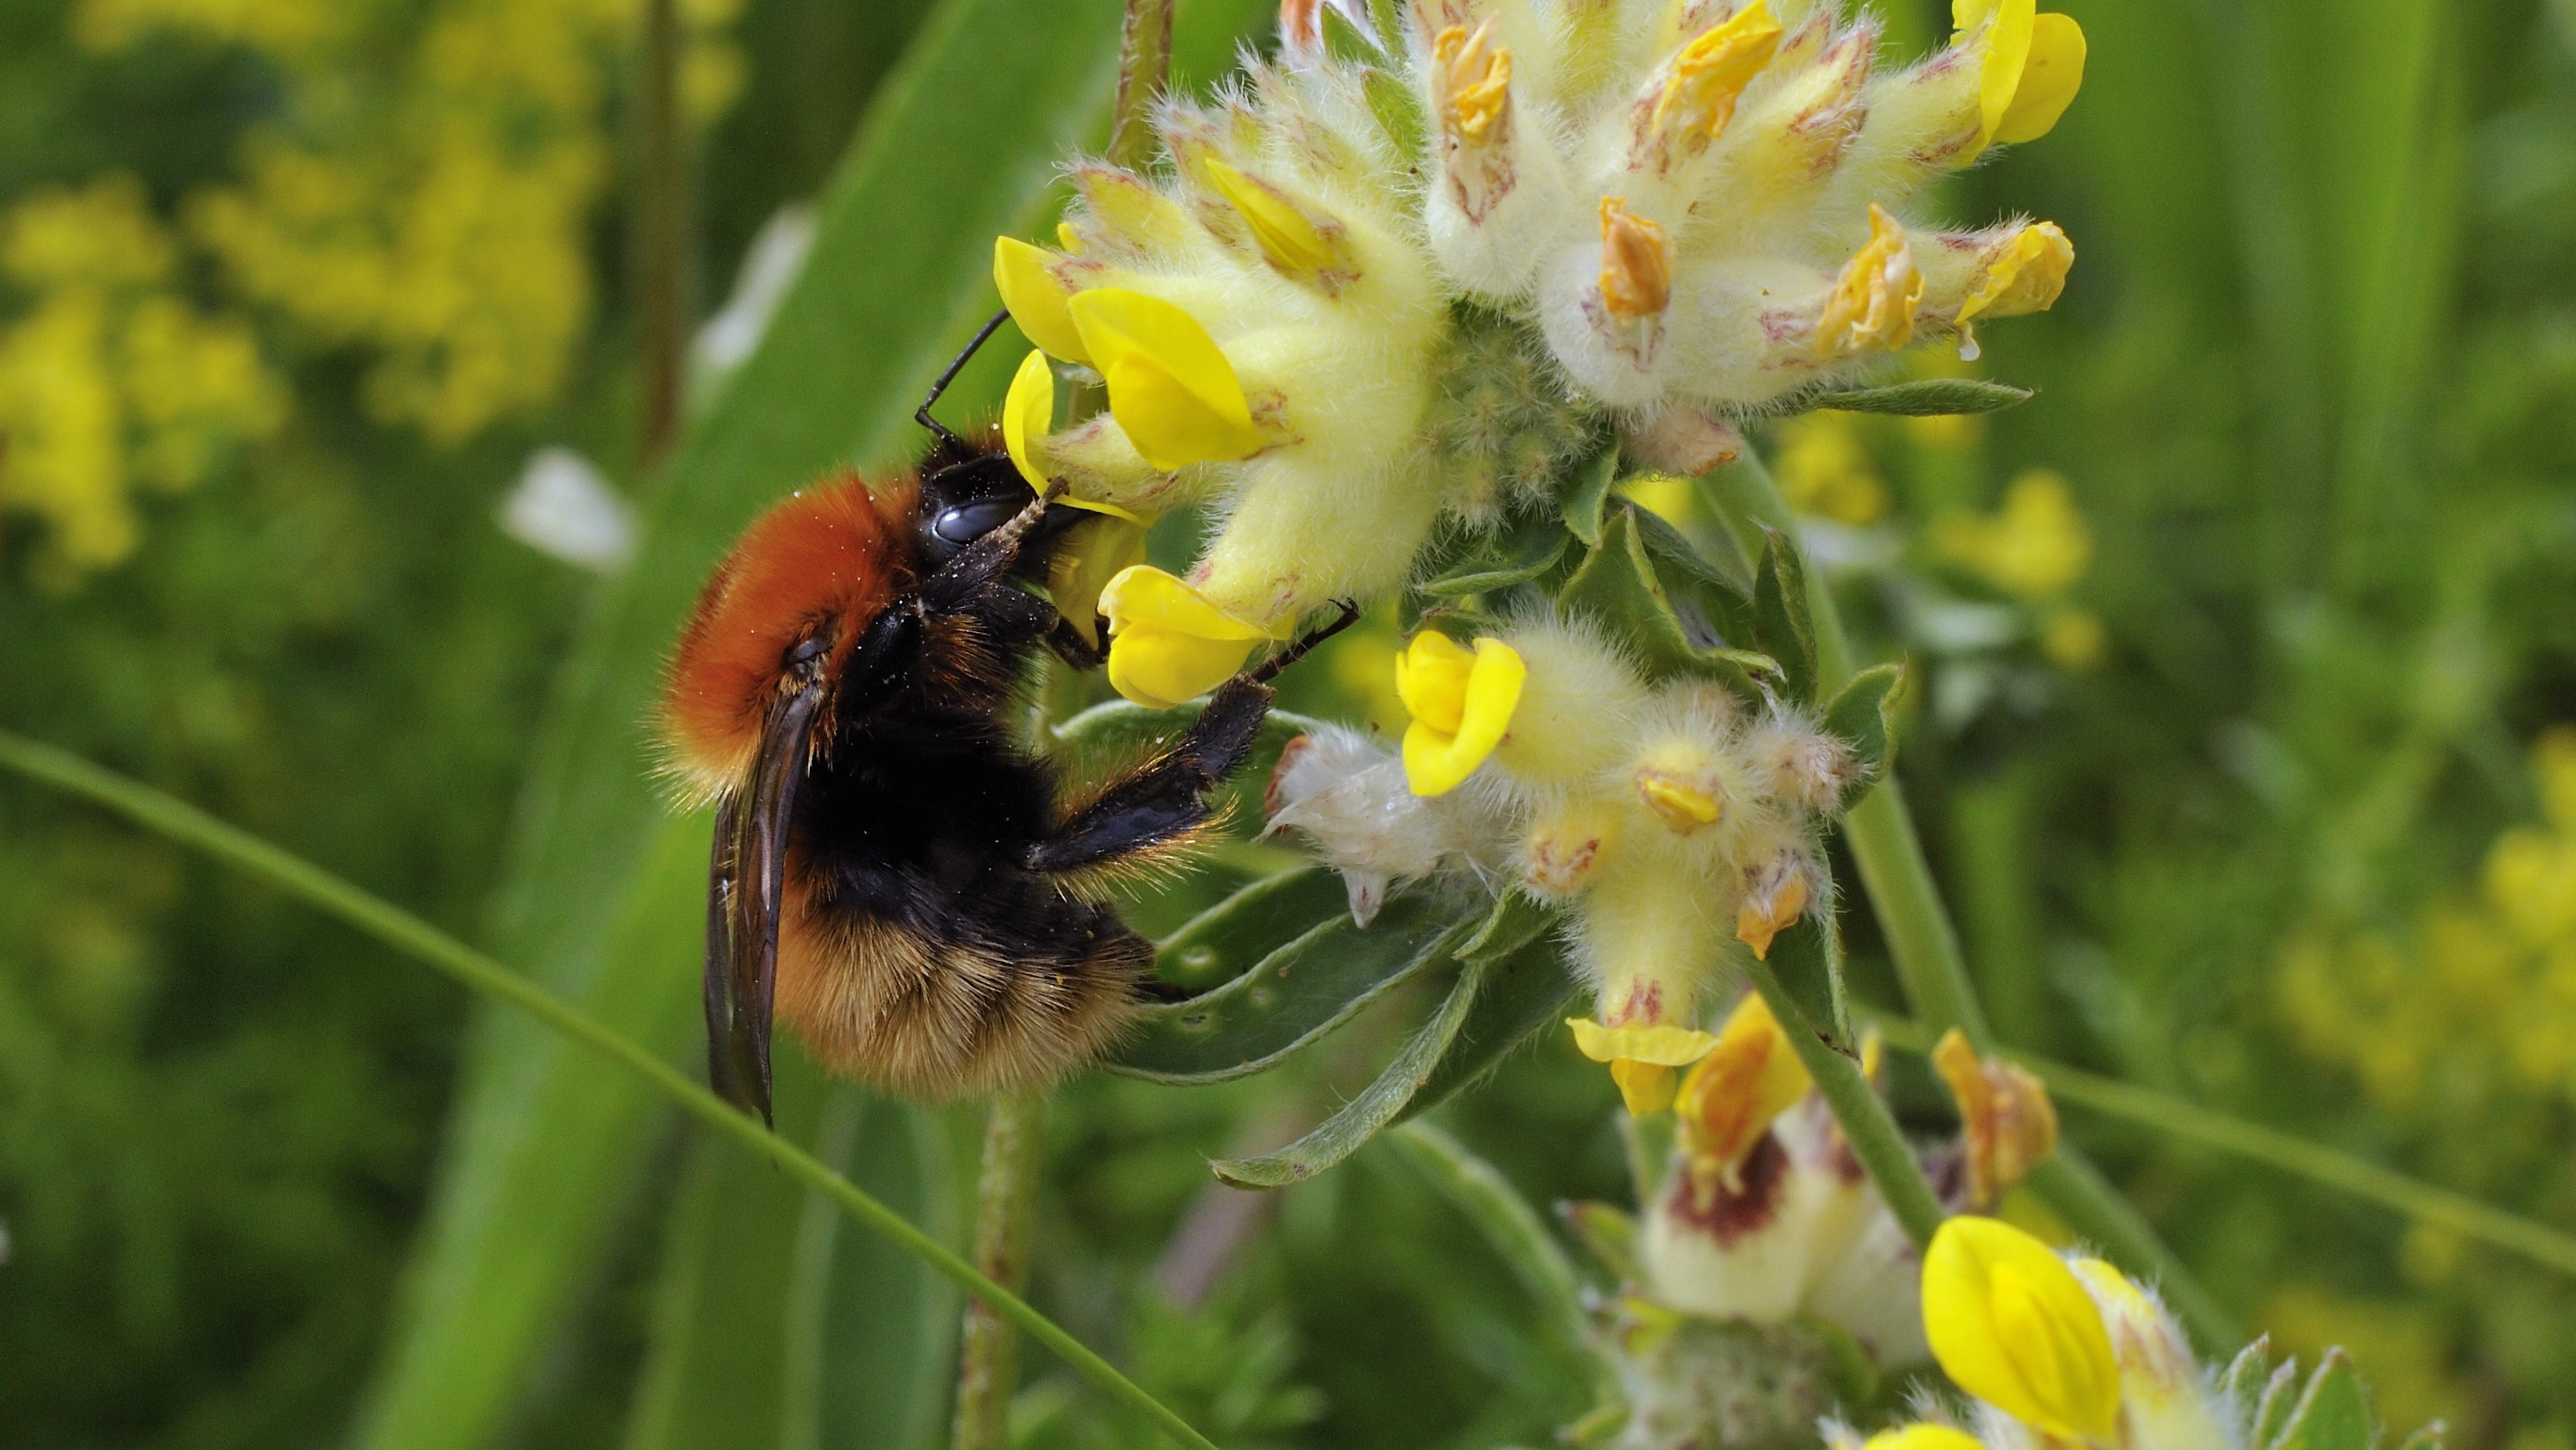 Attract Bees - Attract Bumblebees - Bumblebee - Moss Carder Bee